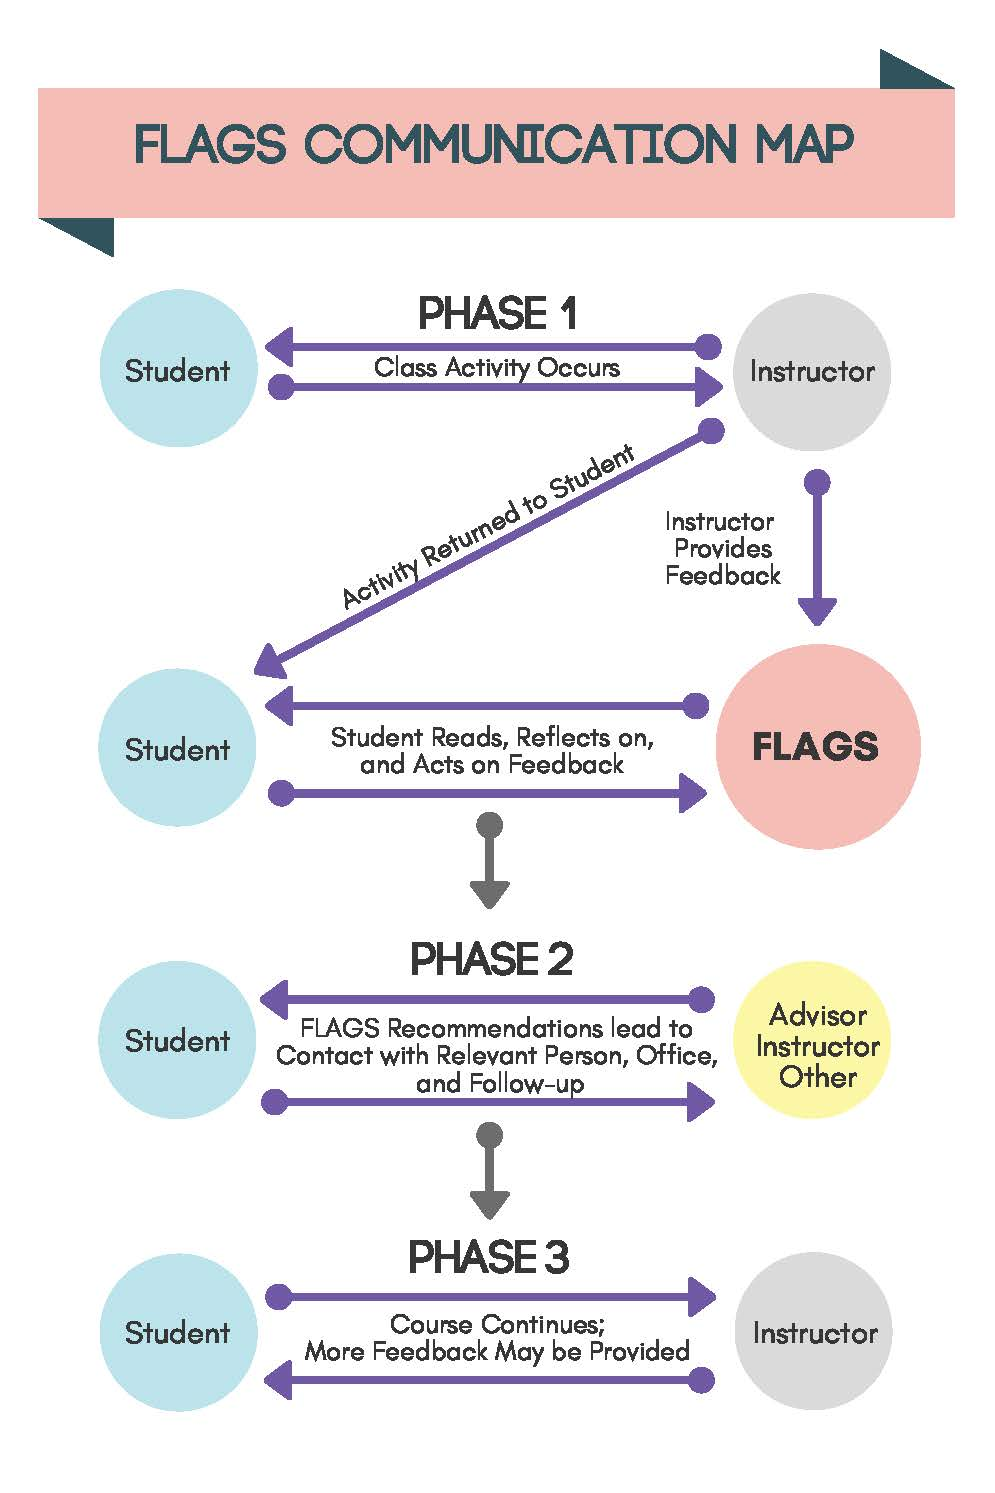 In Phase 1, Class activity occurs between Student and Instructor during which time the Instructor provides feedback to FLAGS roster. Leading to Phase 2, FLAGS Recommendations to the Student leads to reciprocated contact with relevant follow-up person or unit. This guides Student and Instructor to Phase 3 where they continue coursework with possibly more feedback provided throughout the semester.